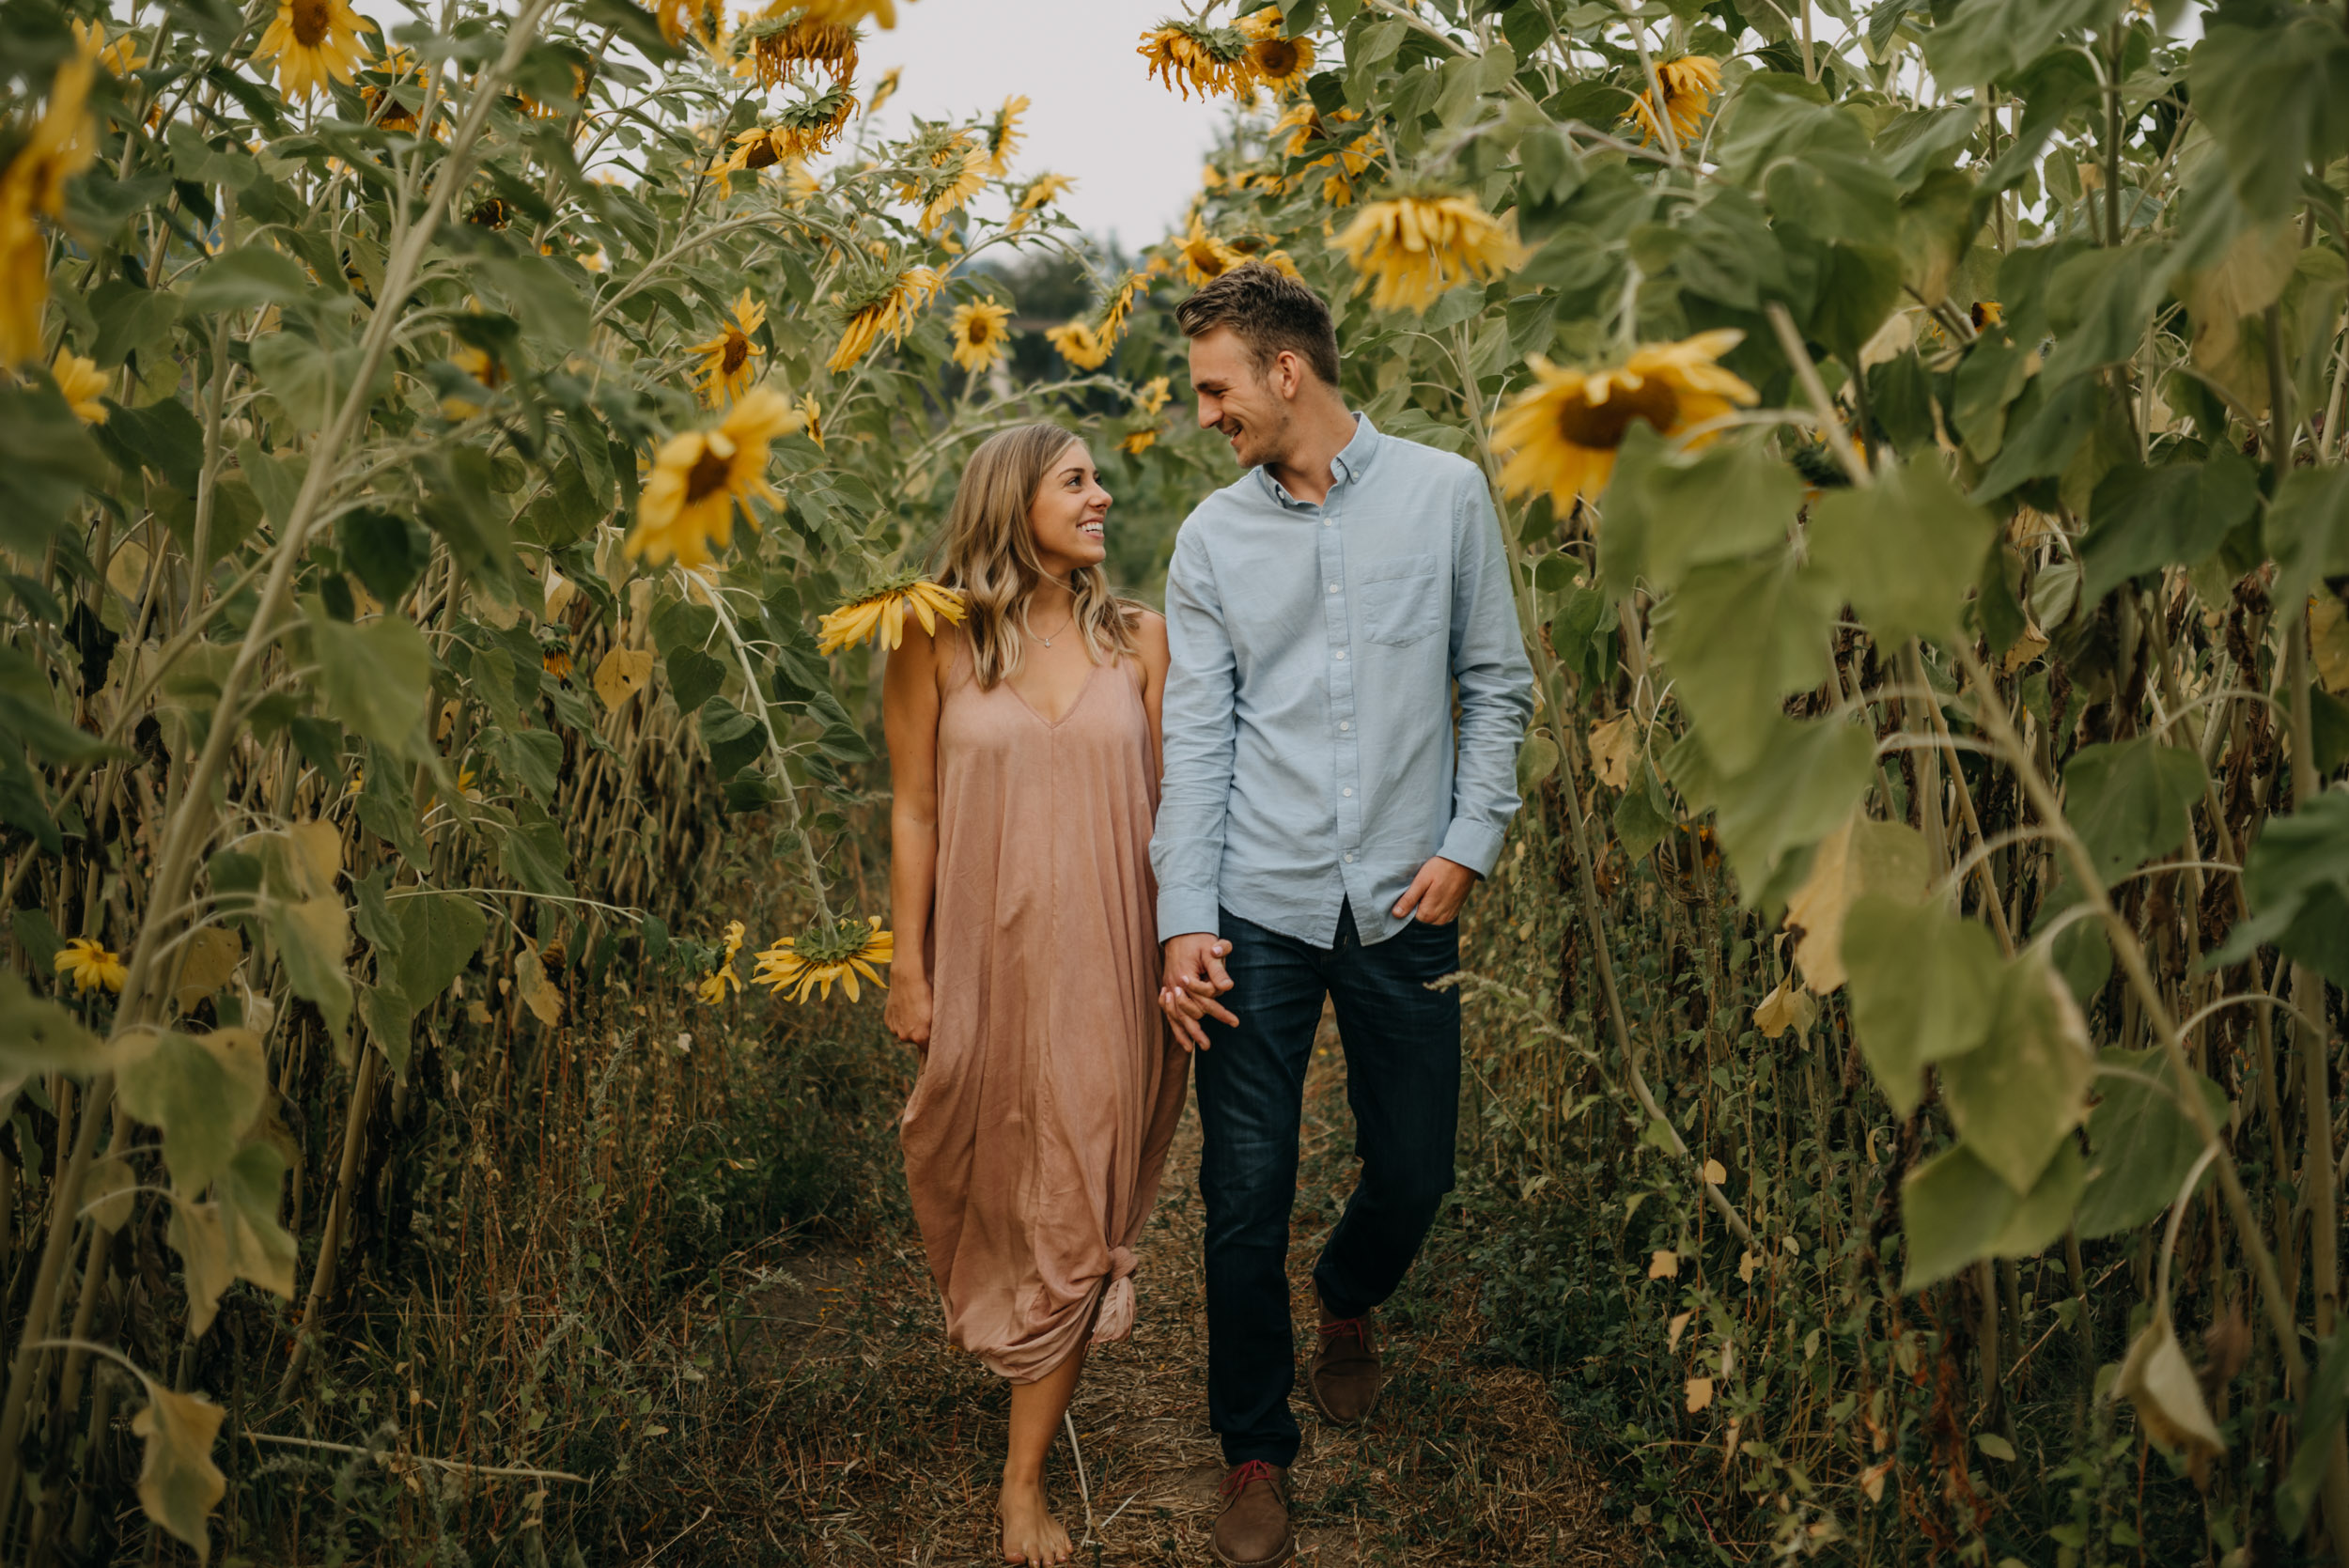 Sauvie-Island-Oregon-Sunflower-Portland-Engagement-3962.jpg